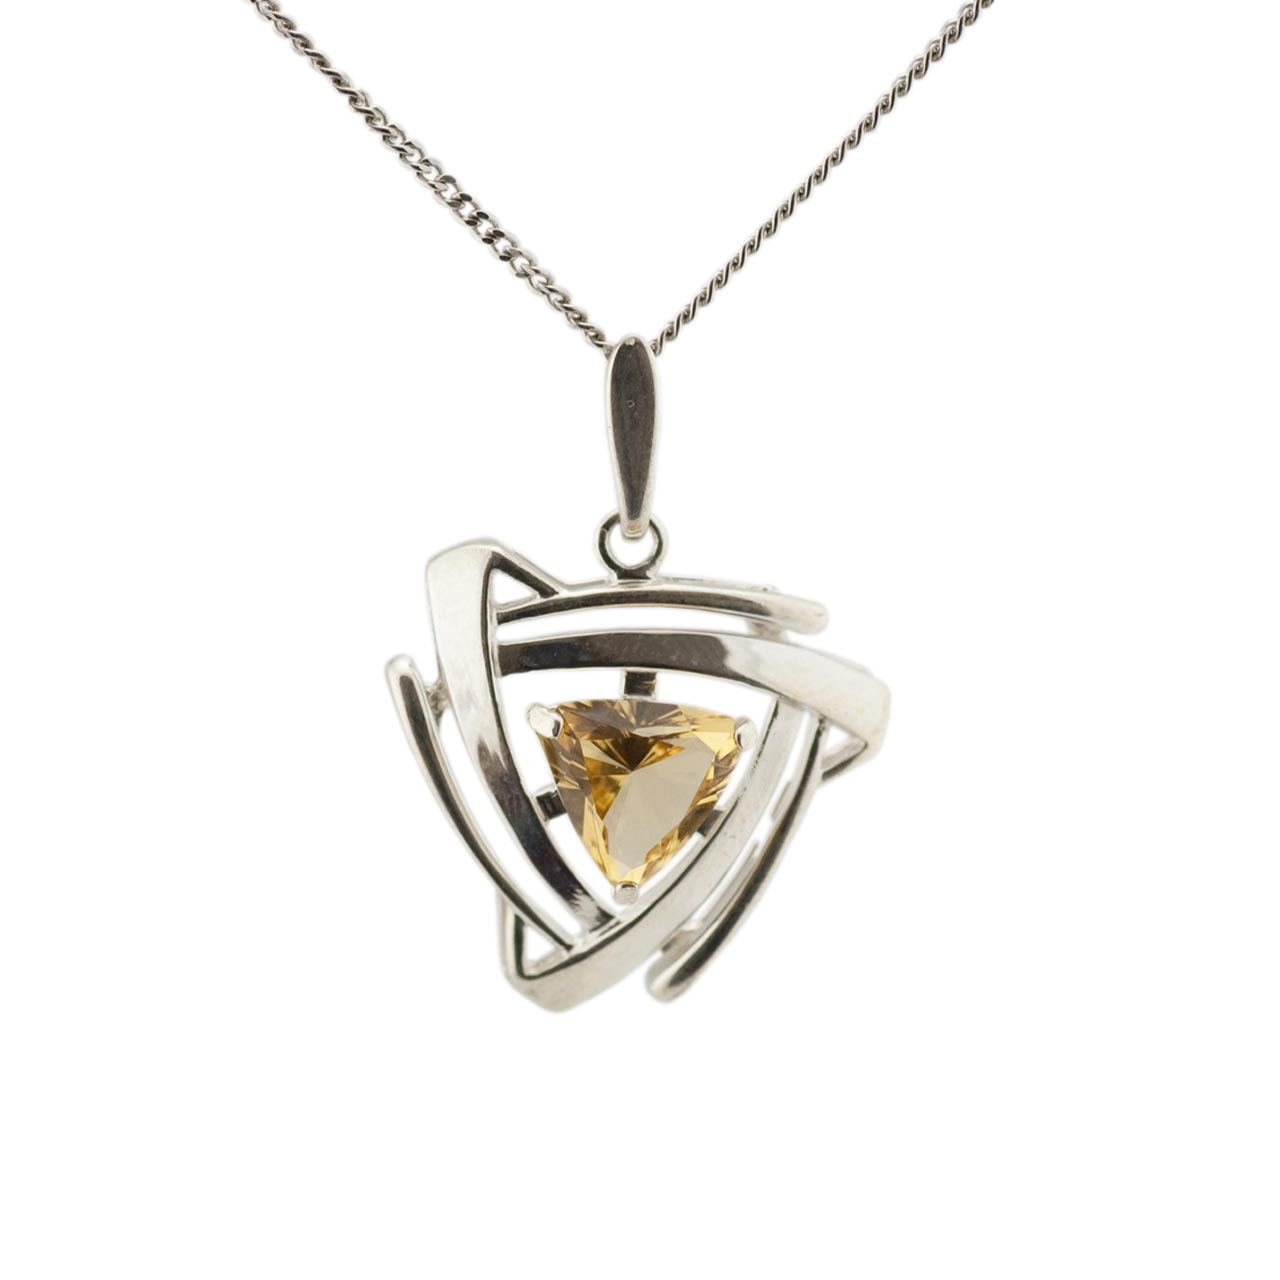 Triangular Shaped Citrine Silver Pendant